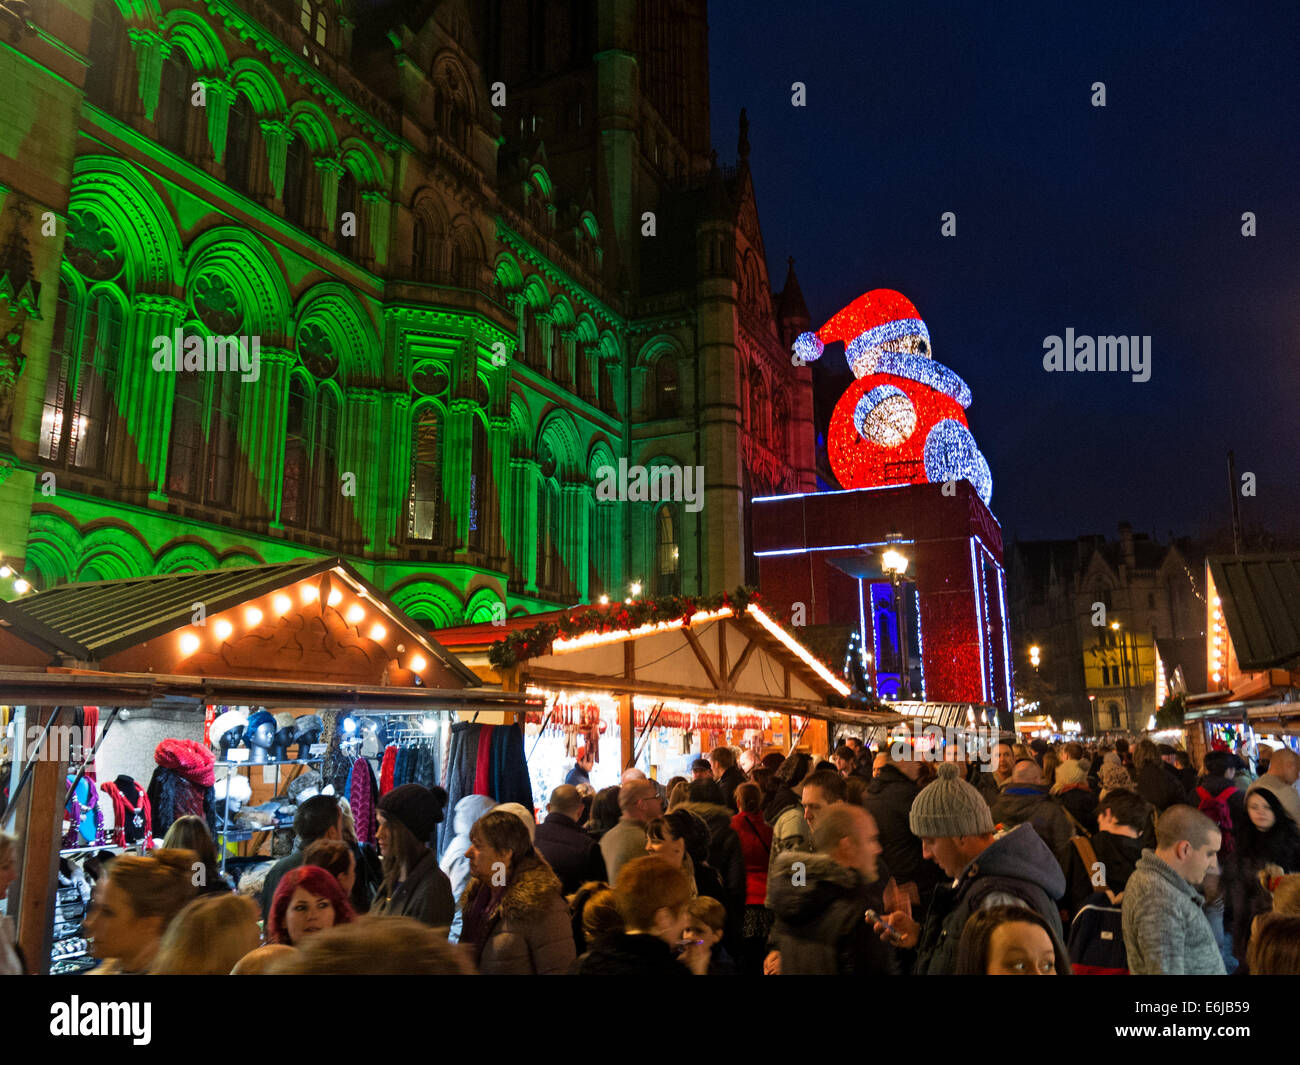 December Christmas Market in Manchester UK at night Stock Photo